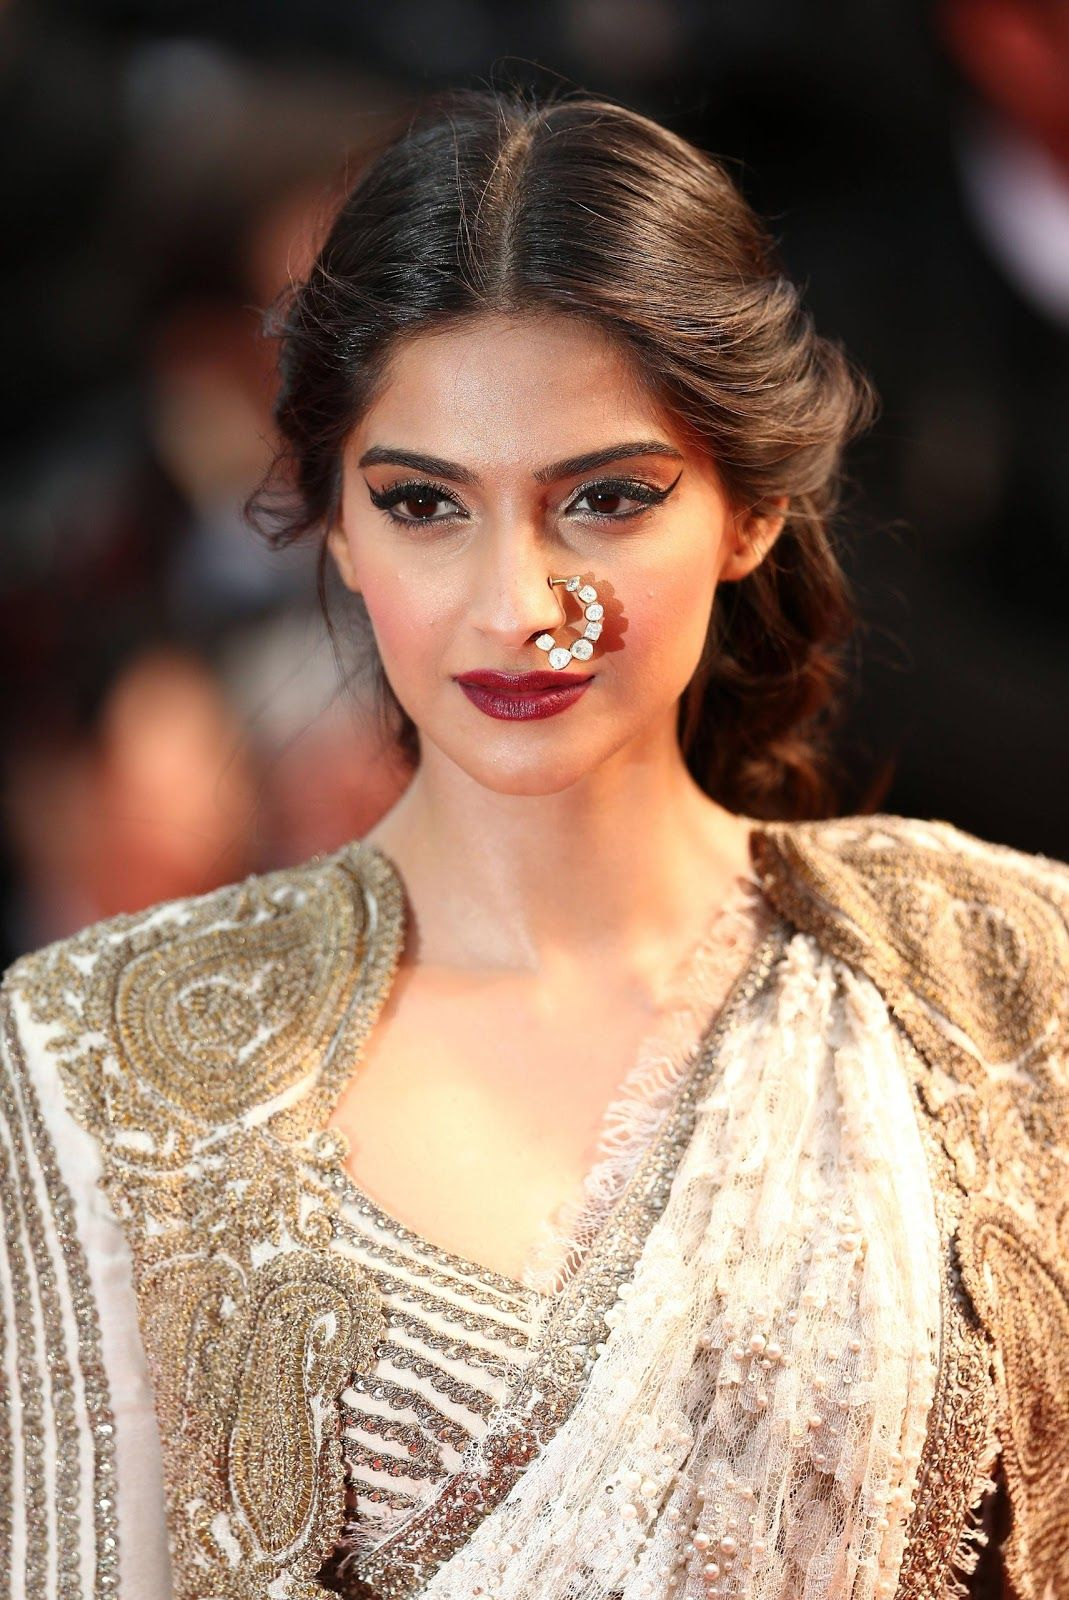 Prem Ratan Dhan Payo Actress Sonam Kapoor 100 Hd Images